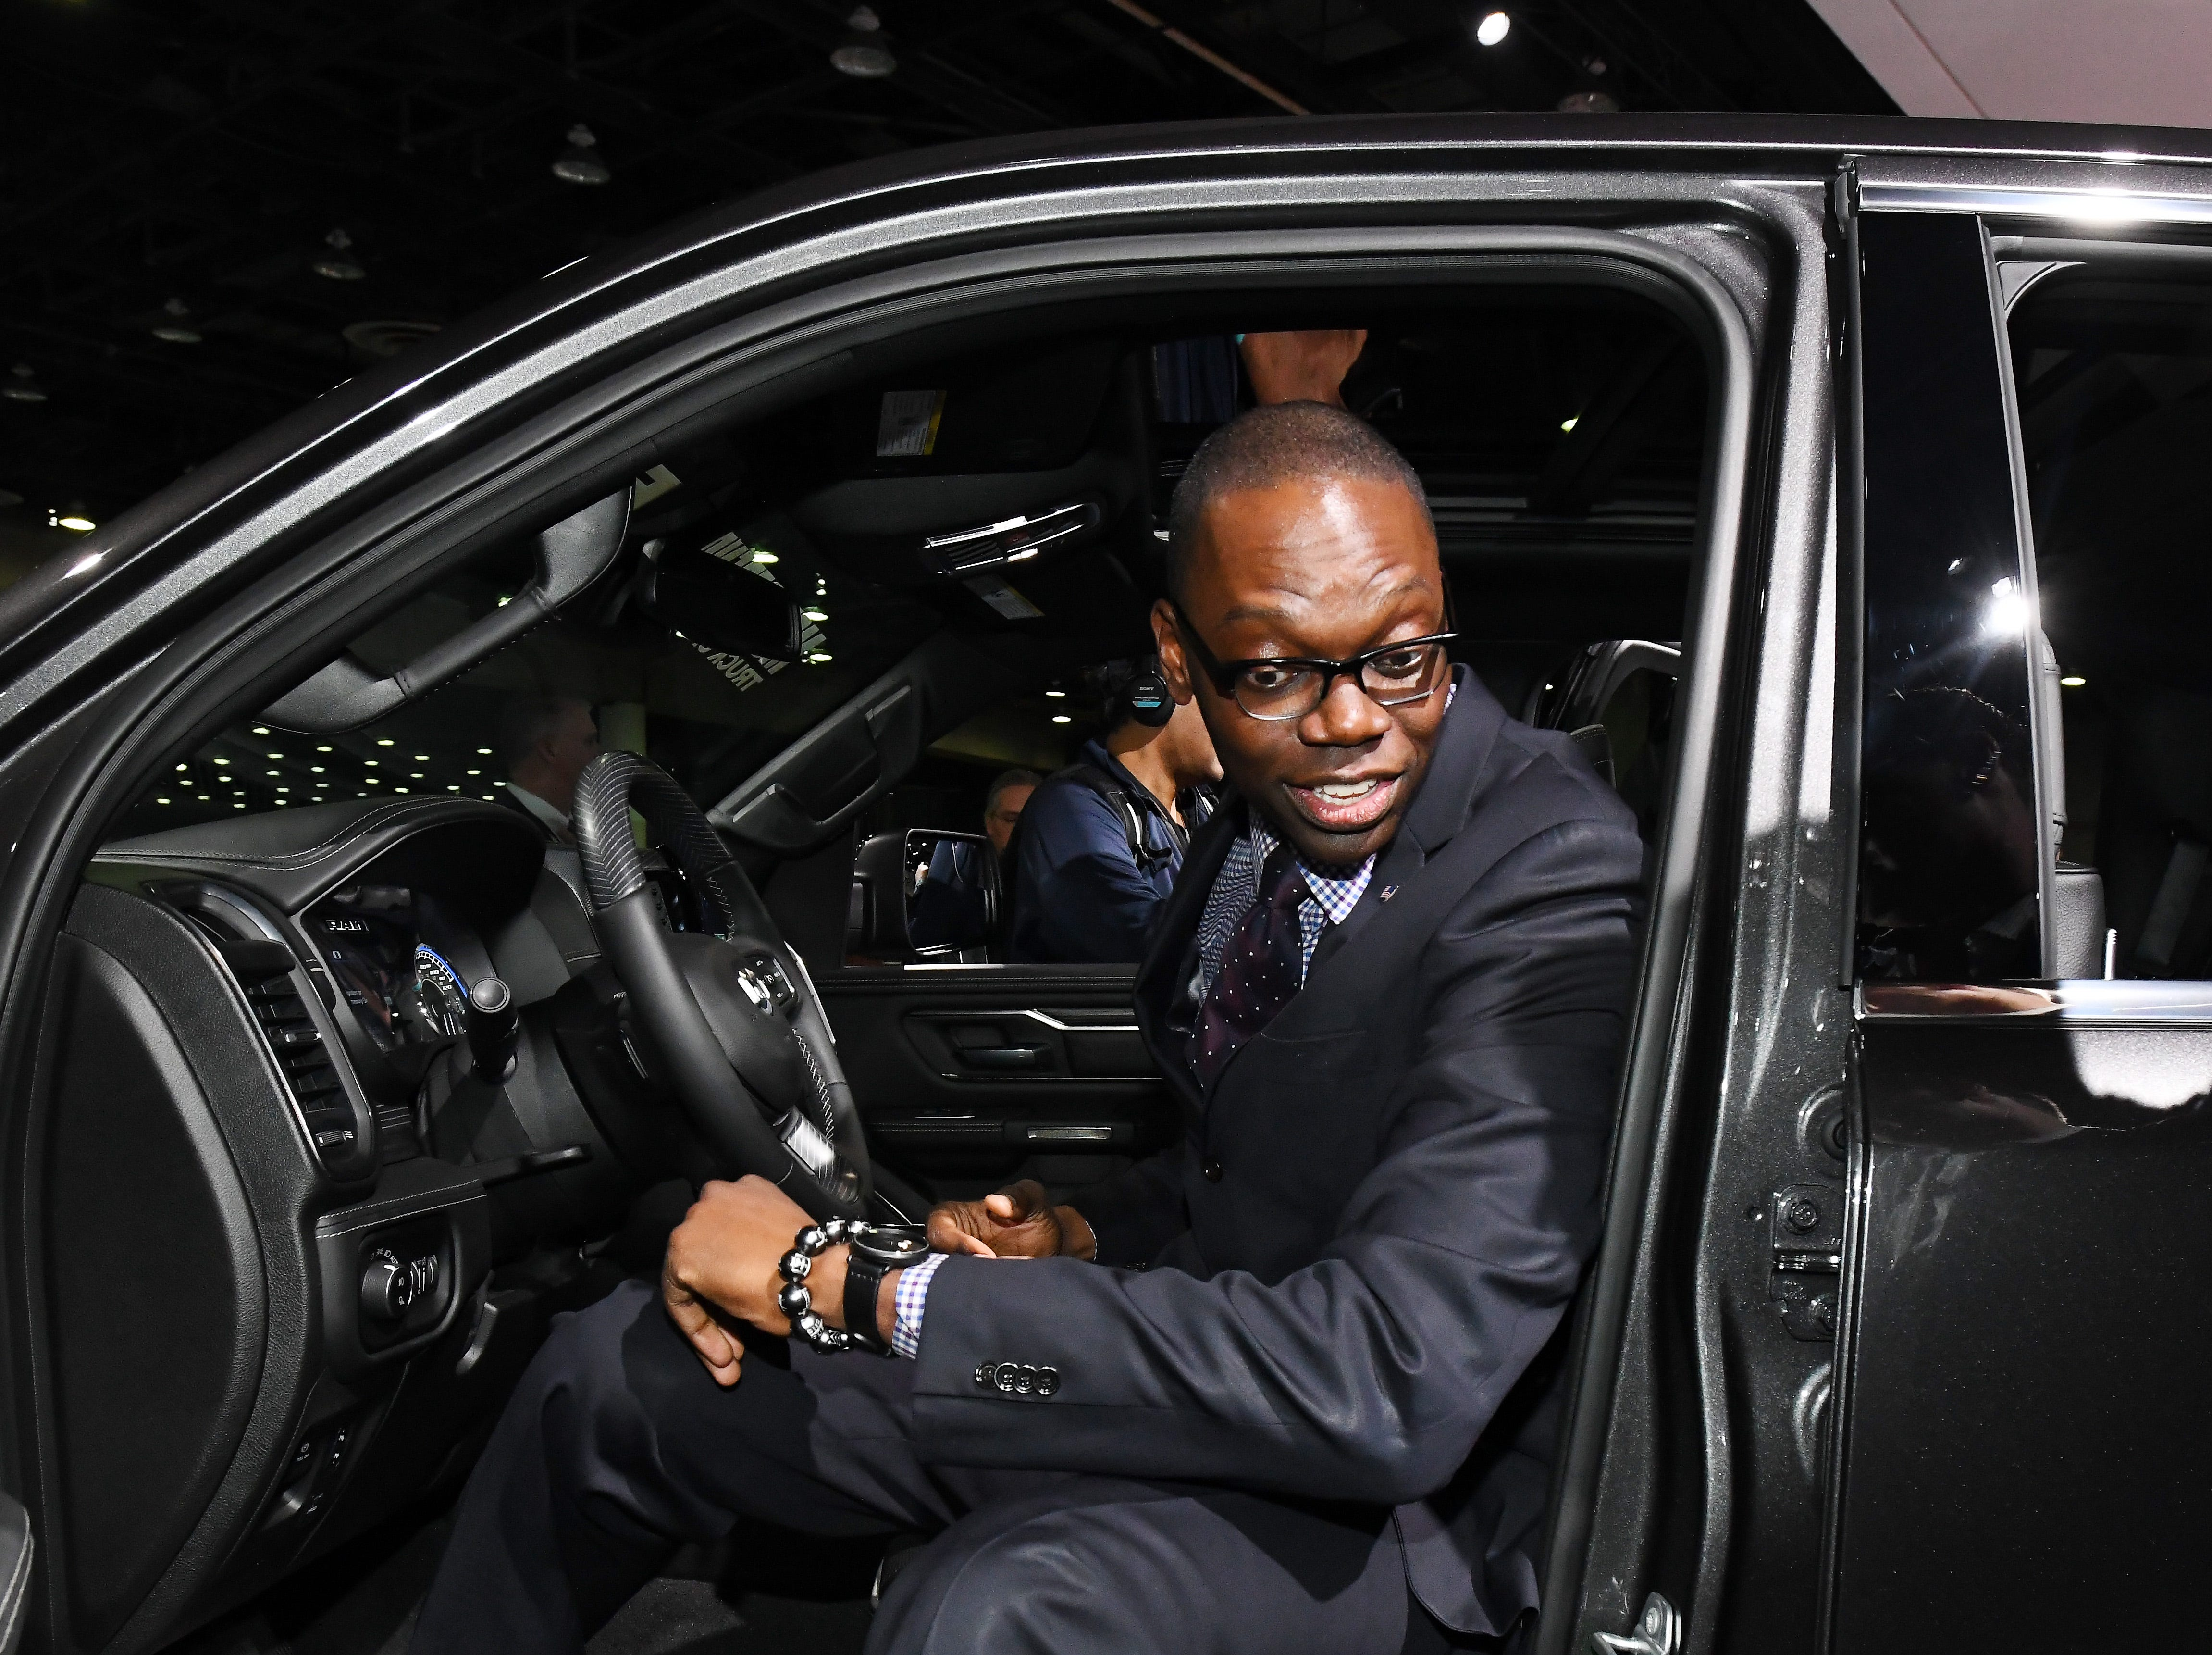 Michigan Lieutenant Governor Garlin Gilchrist looks over a Ram 1500 during a tour of the FCA display at the North American International Auto Show.